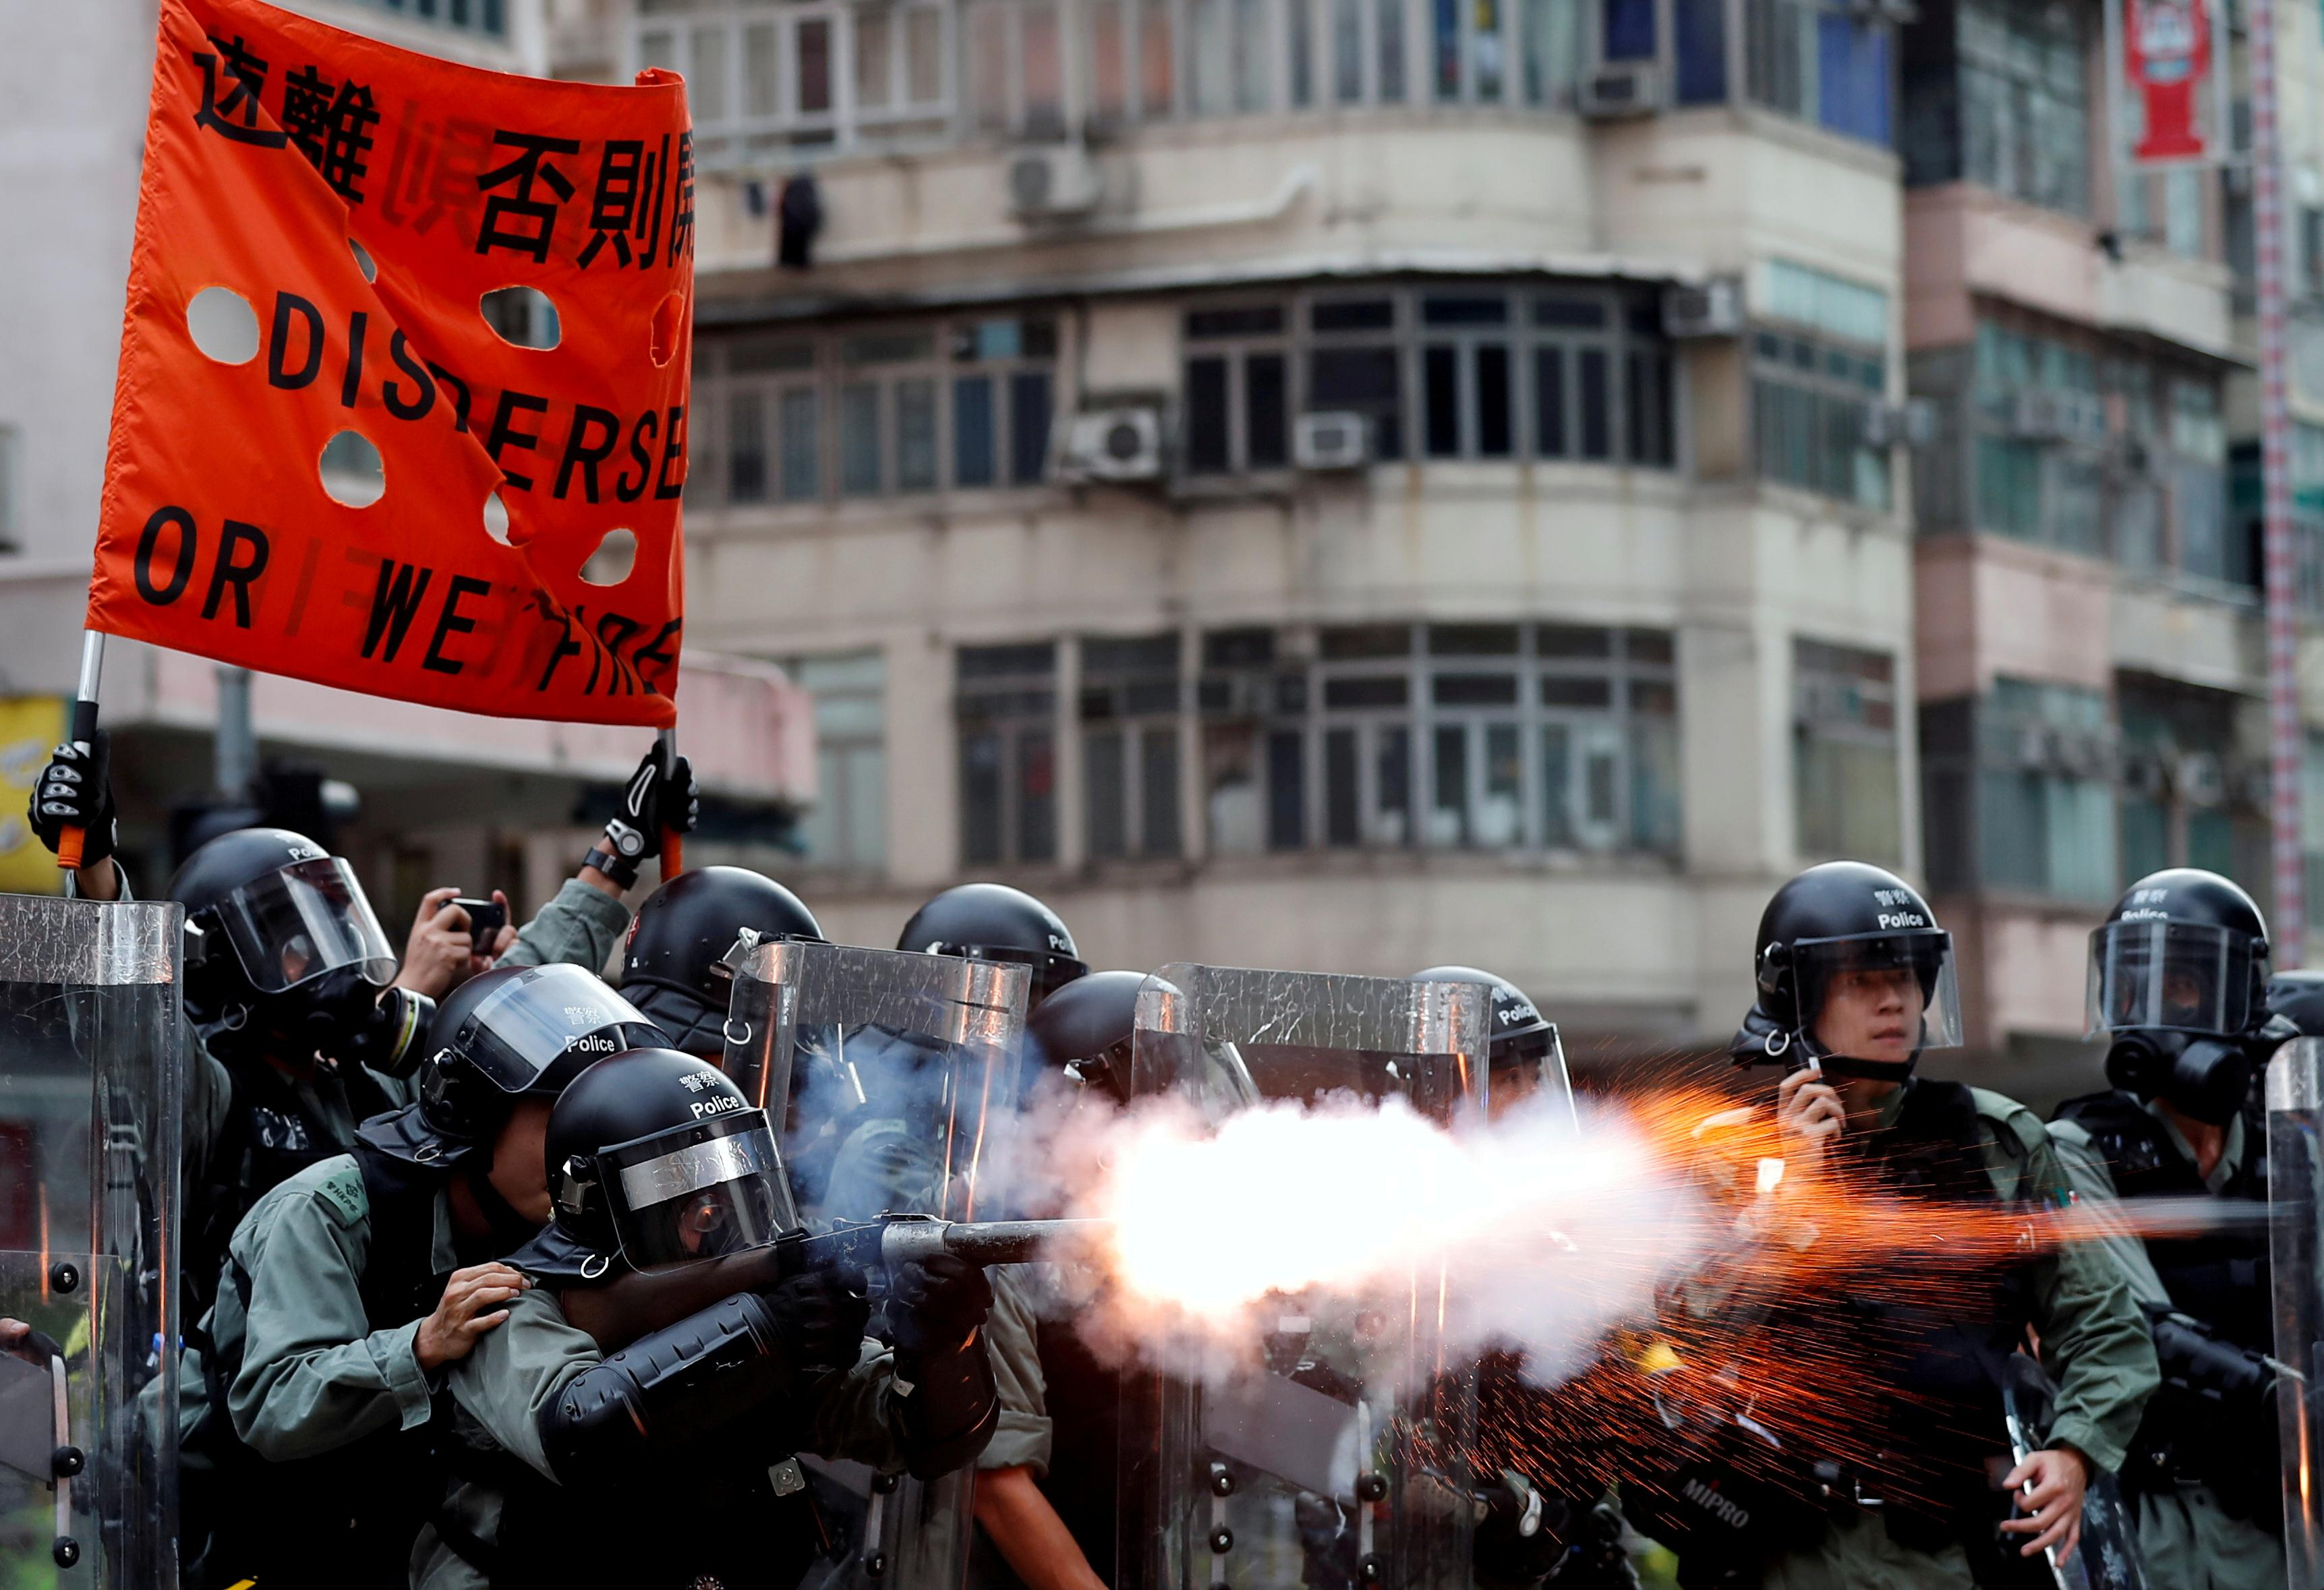 Frontline protesters make case for violence in Hong Kong protests